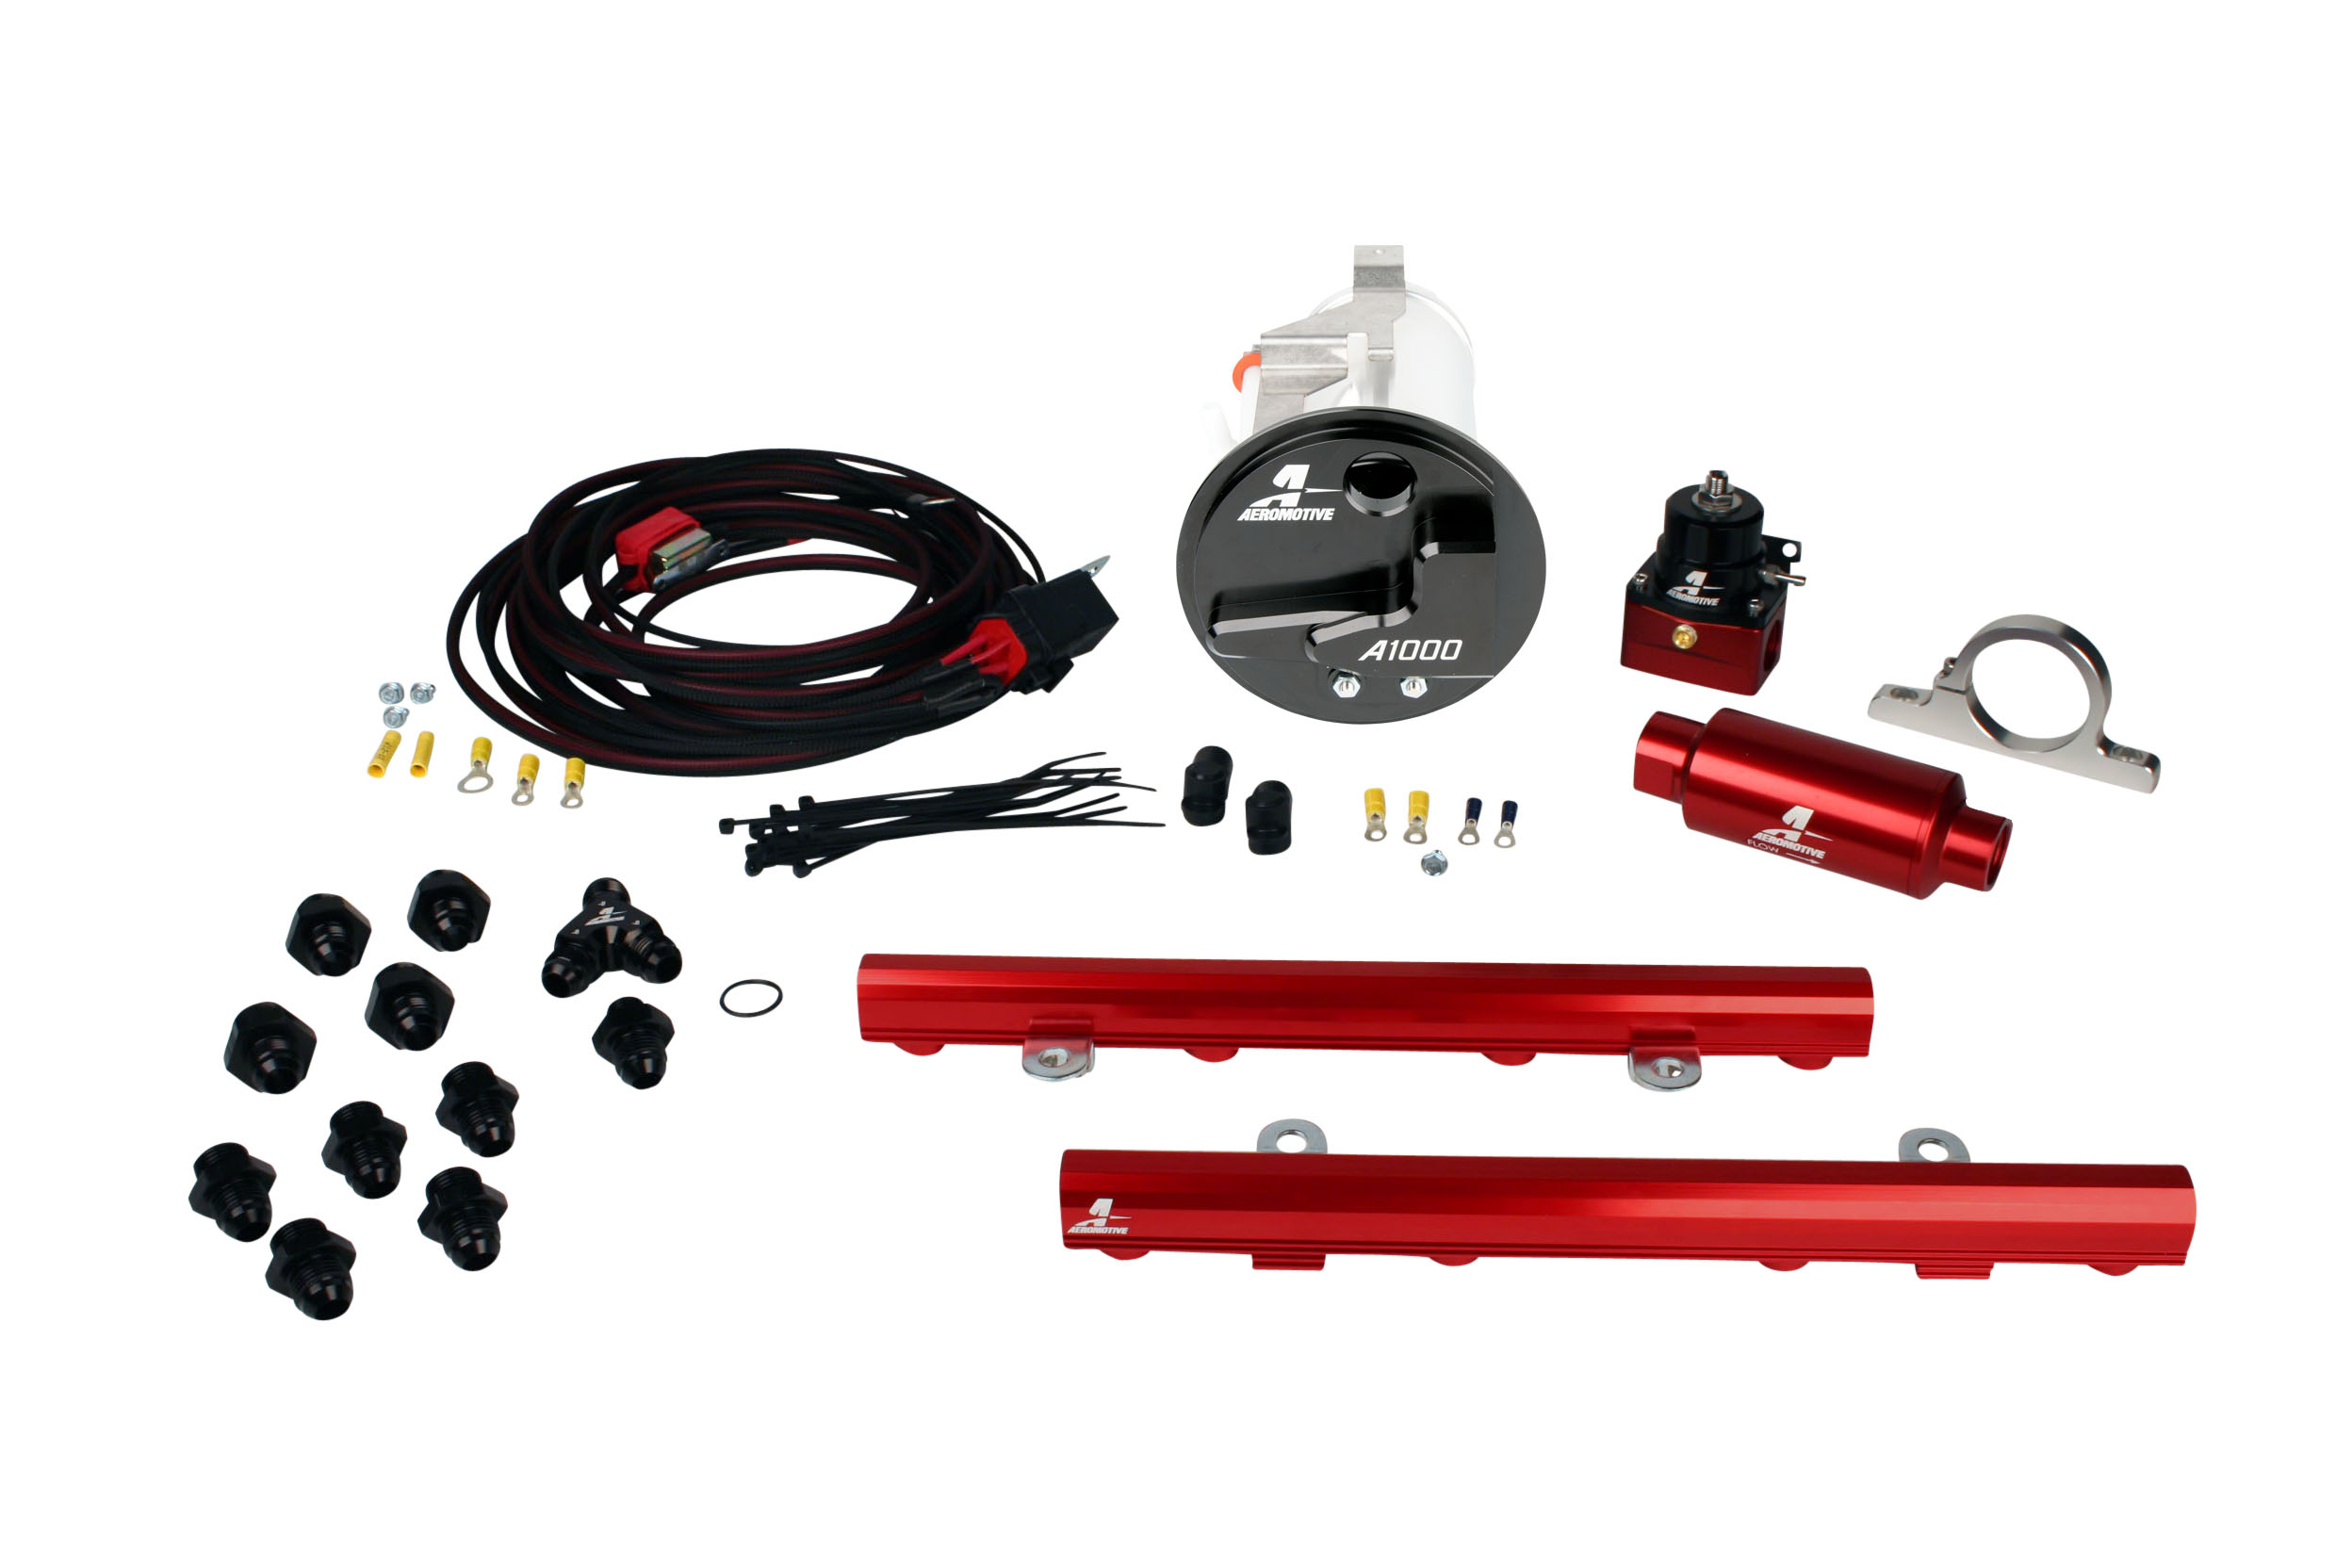 2005-2009 Ford Mustang GT Aeromotive Stealth A1000 Race Fuel System w/5.0L 4-V Fuel Rails Coyote Swap